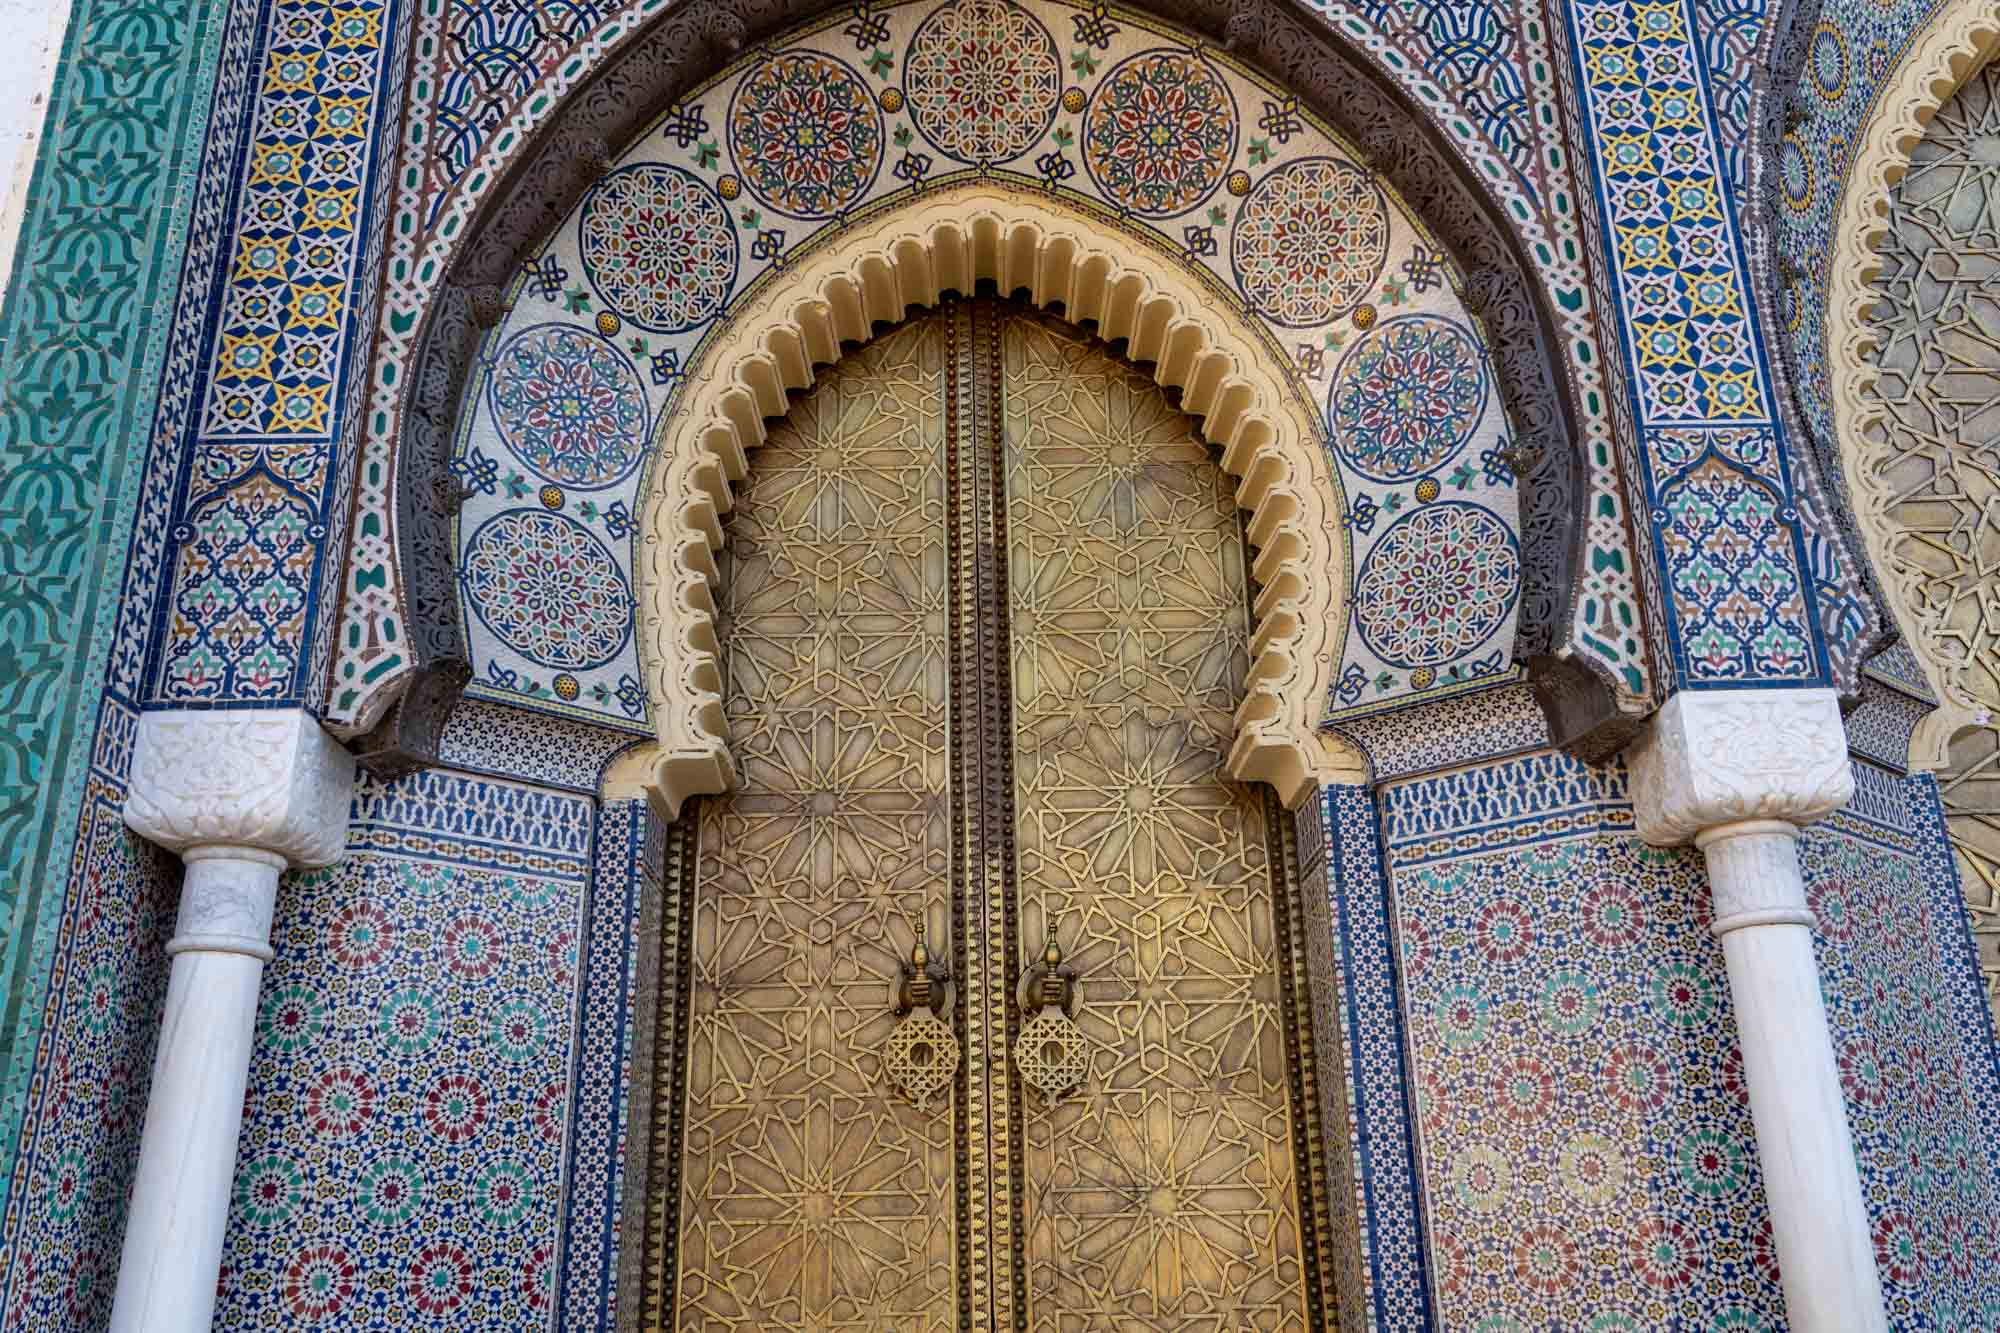 Royal Palace door in Fes, Morocco